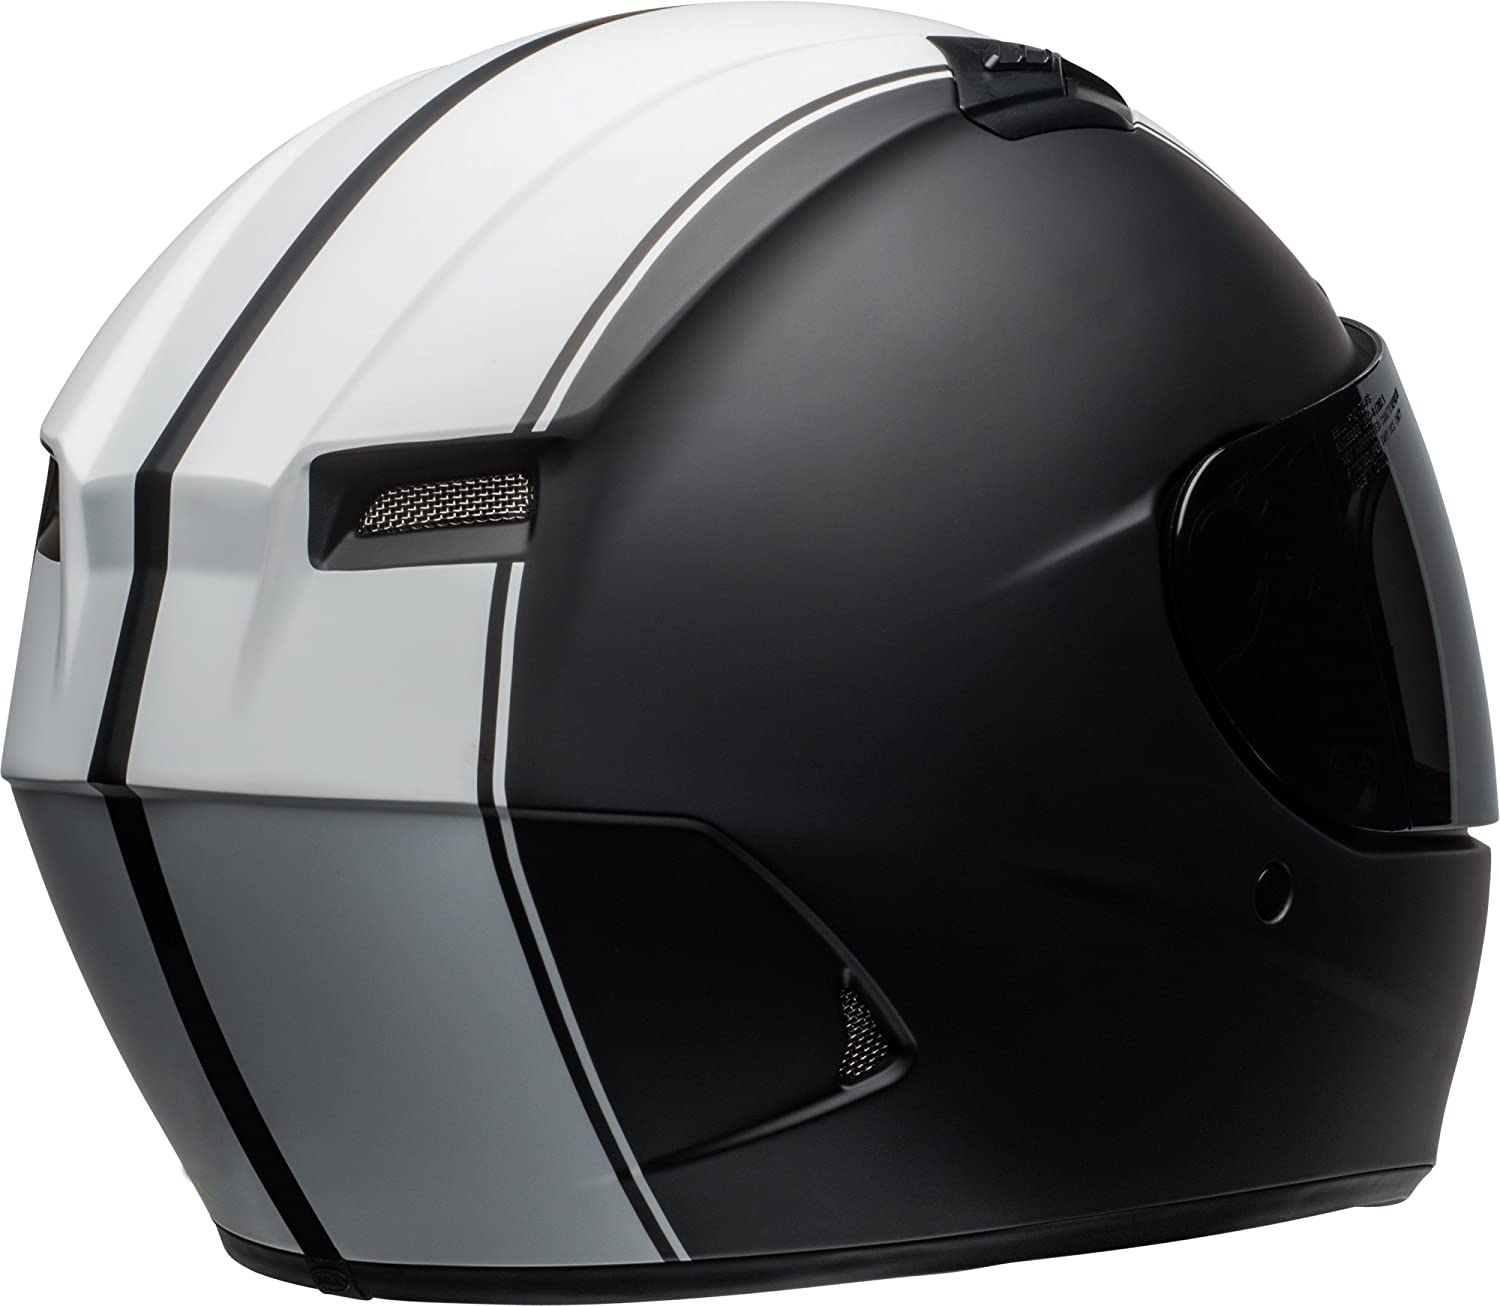 Matte Black//White 2X-Large Bell Raly Adult Qualifier DLX On-Road Motorcycle Helmet